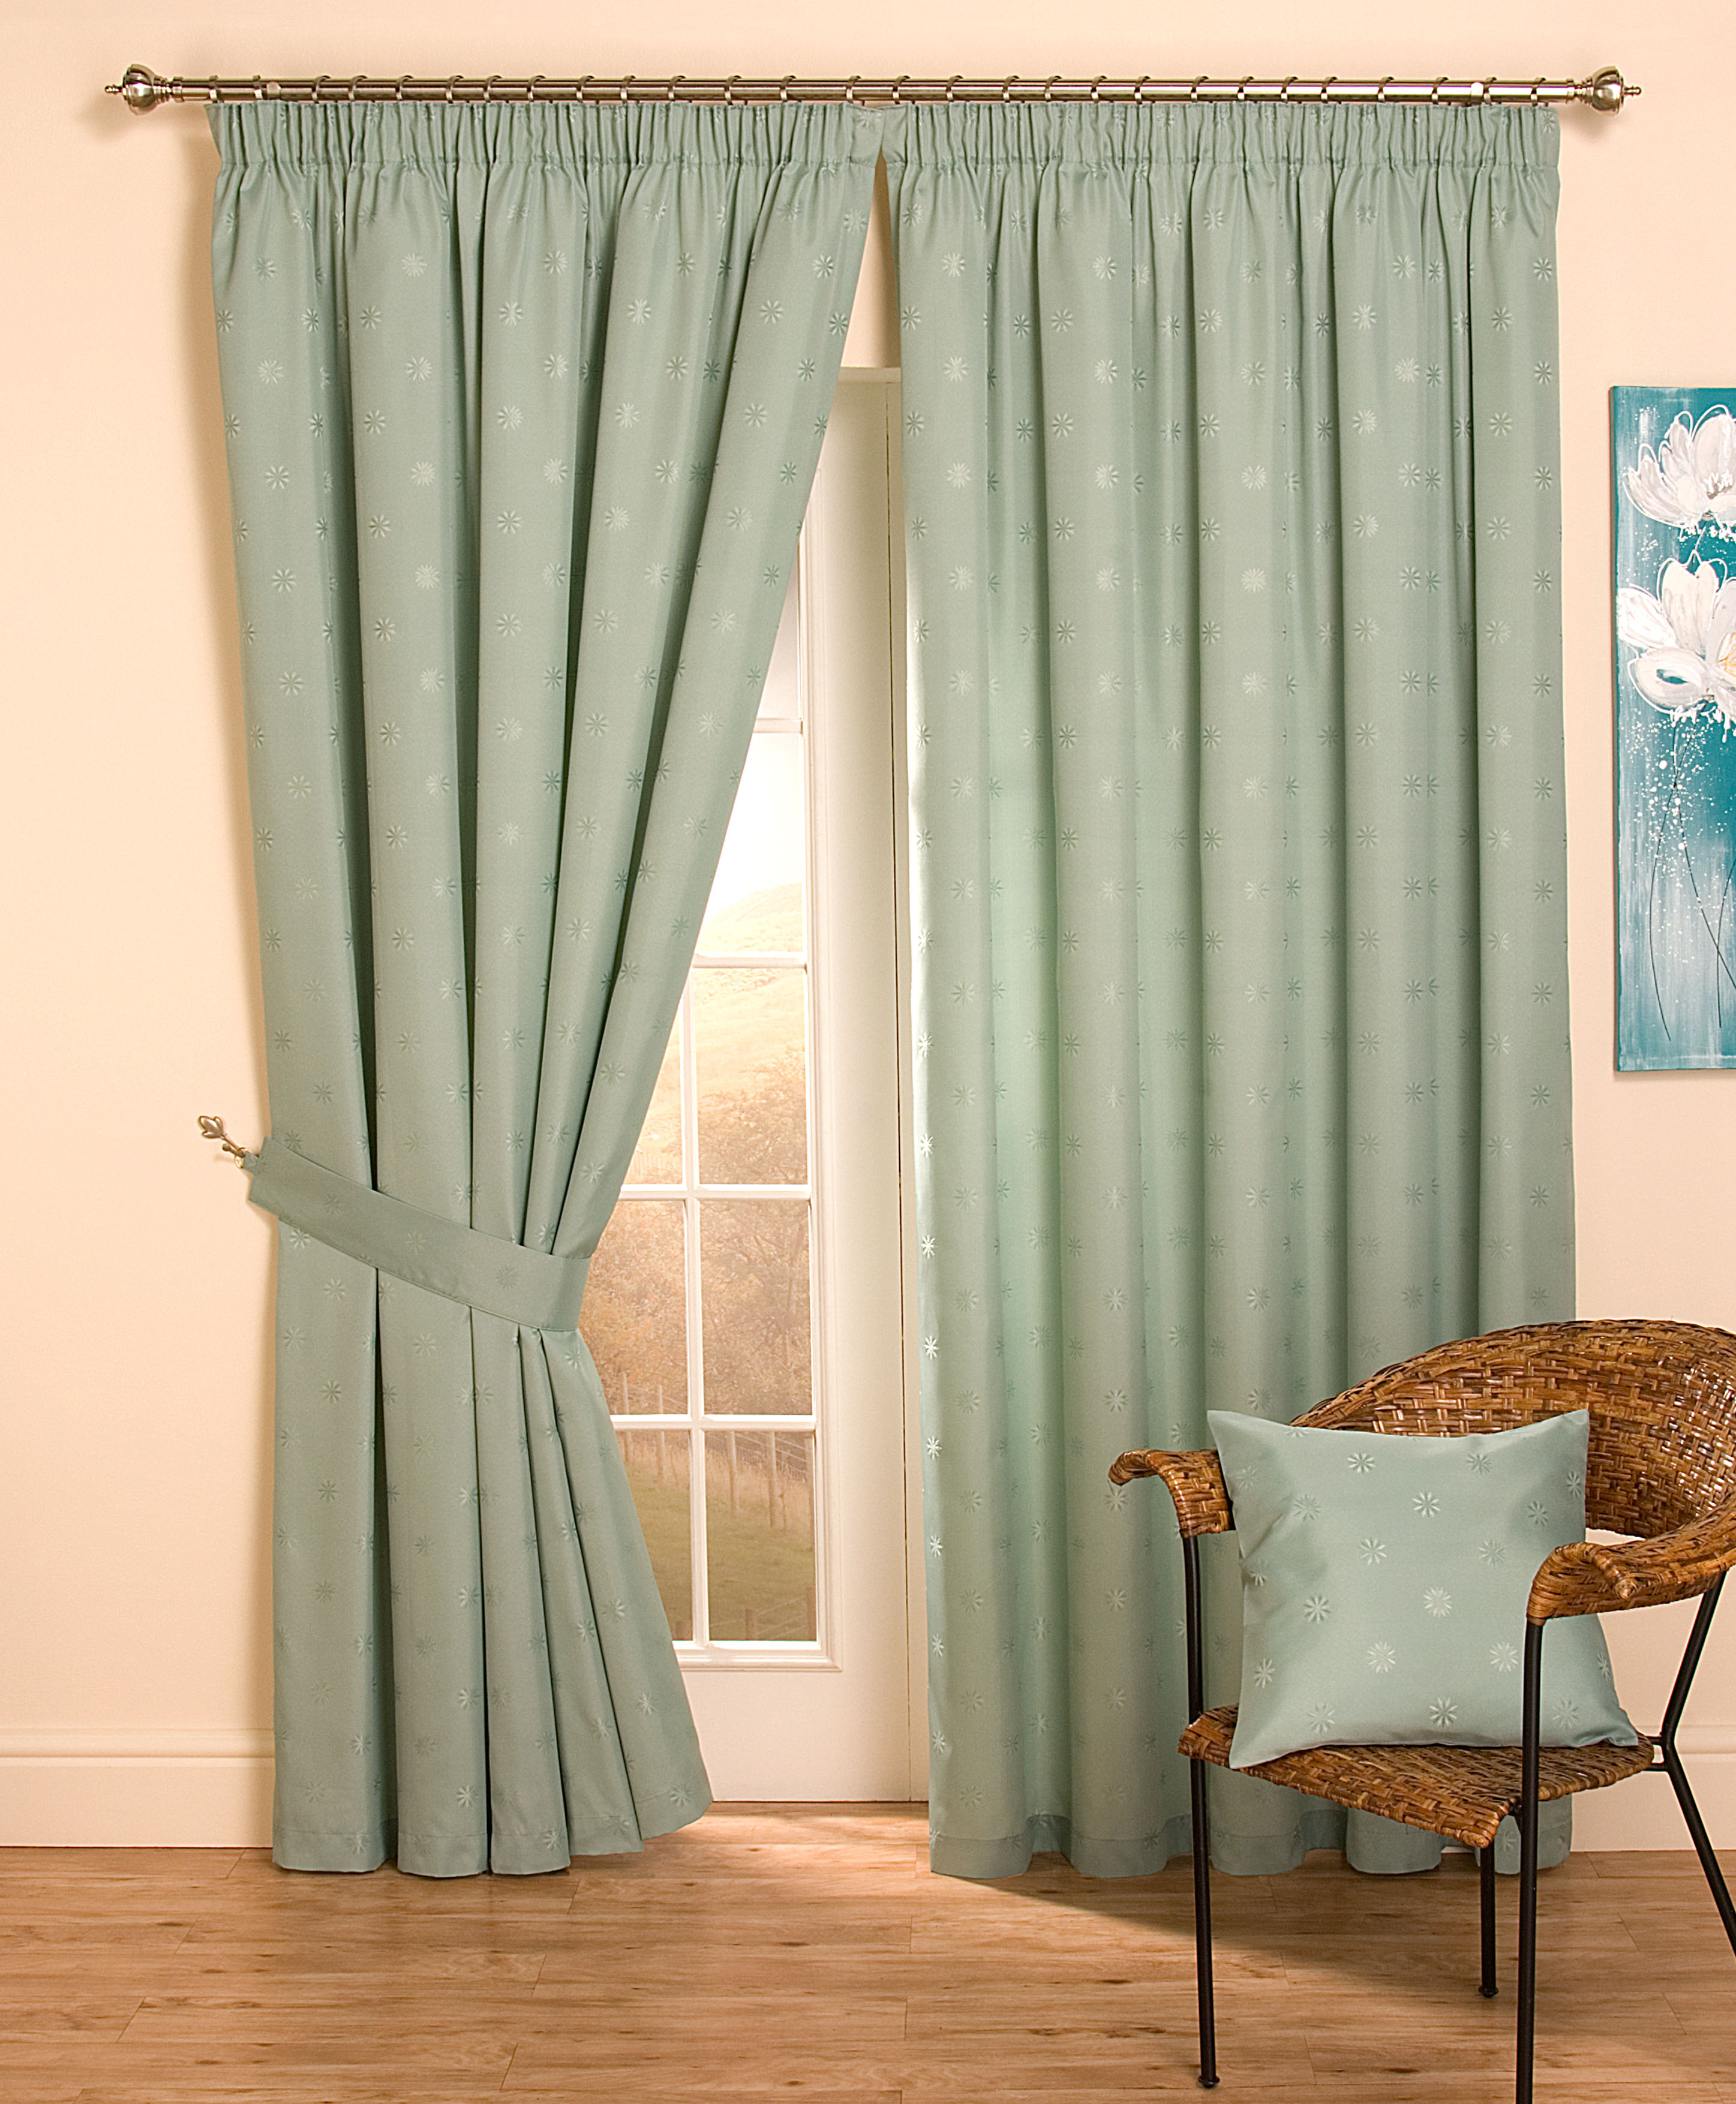 Thermal Lined Curtains Diy Window Curtains Drapes